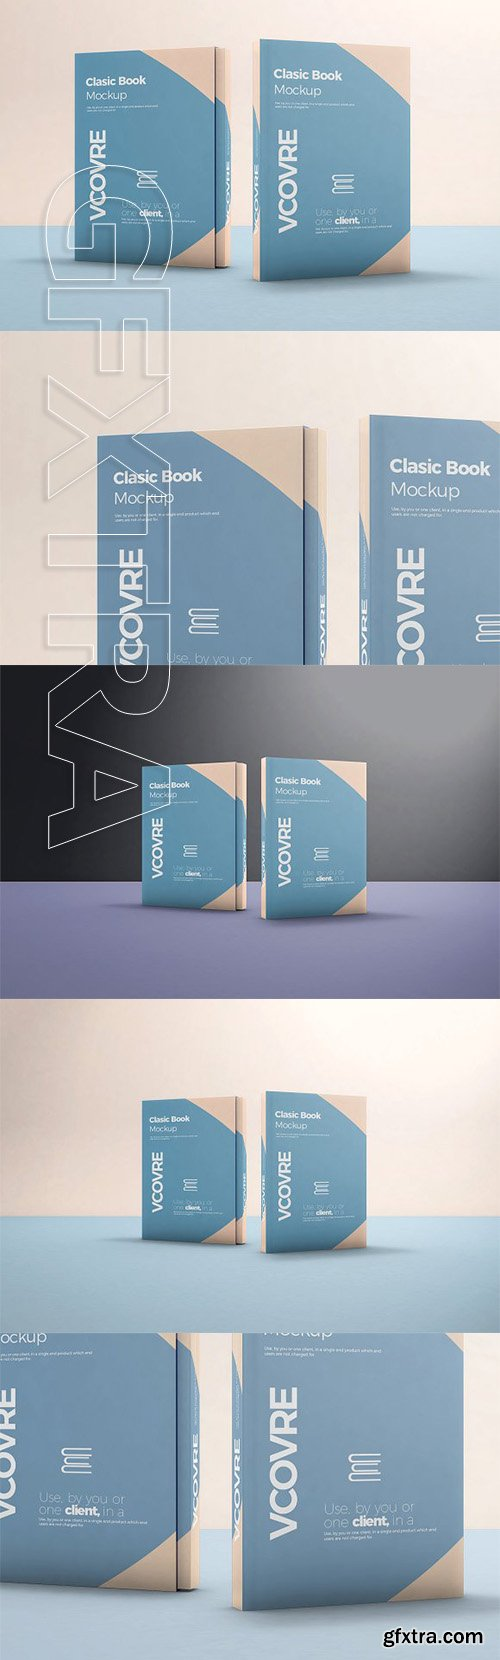 CreativeMarket - Book Hard Cover Mockup 7 2606847